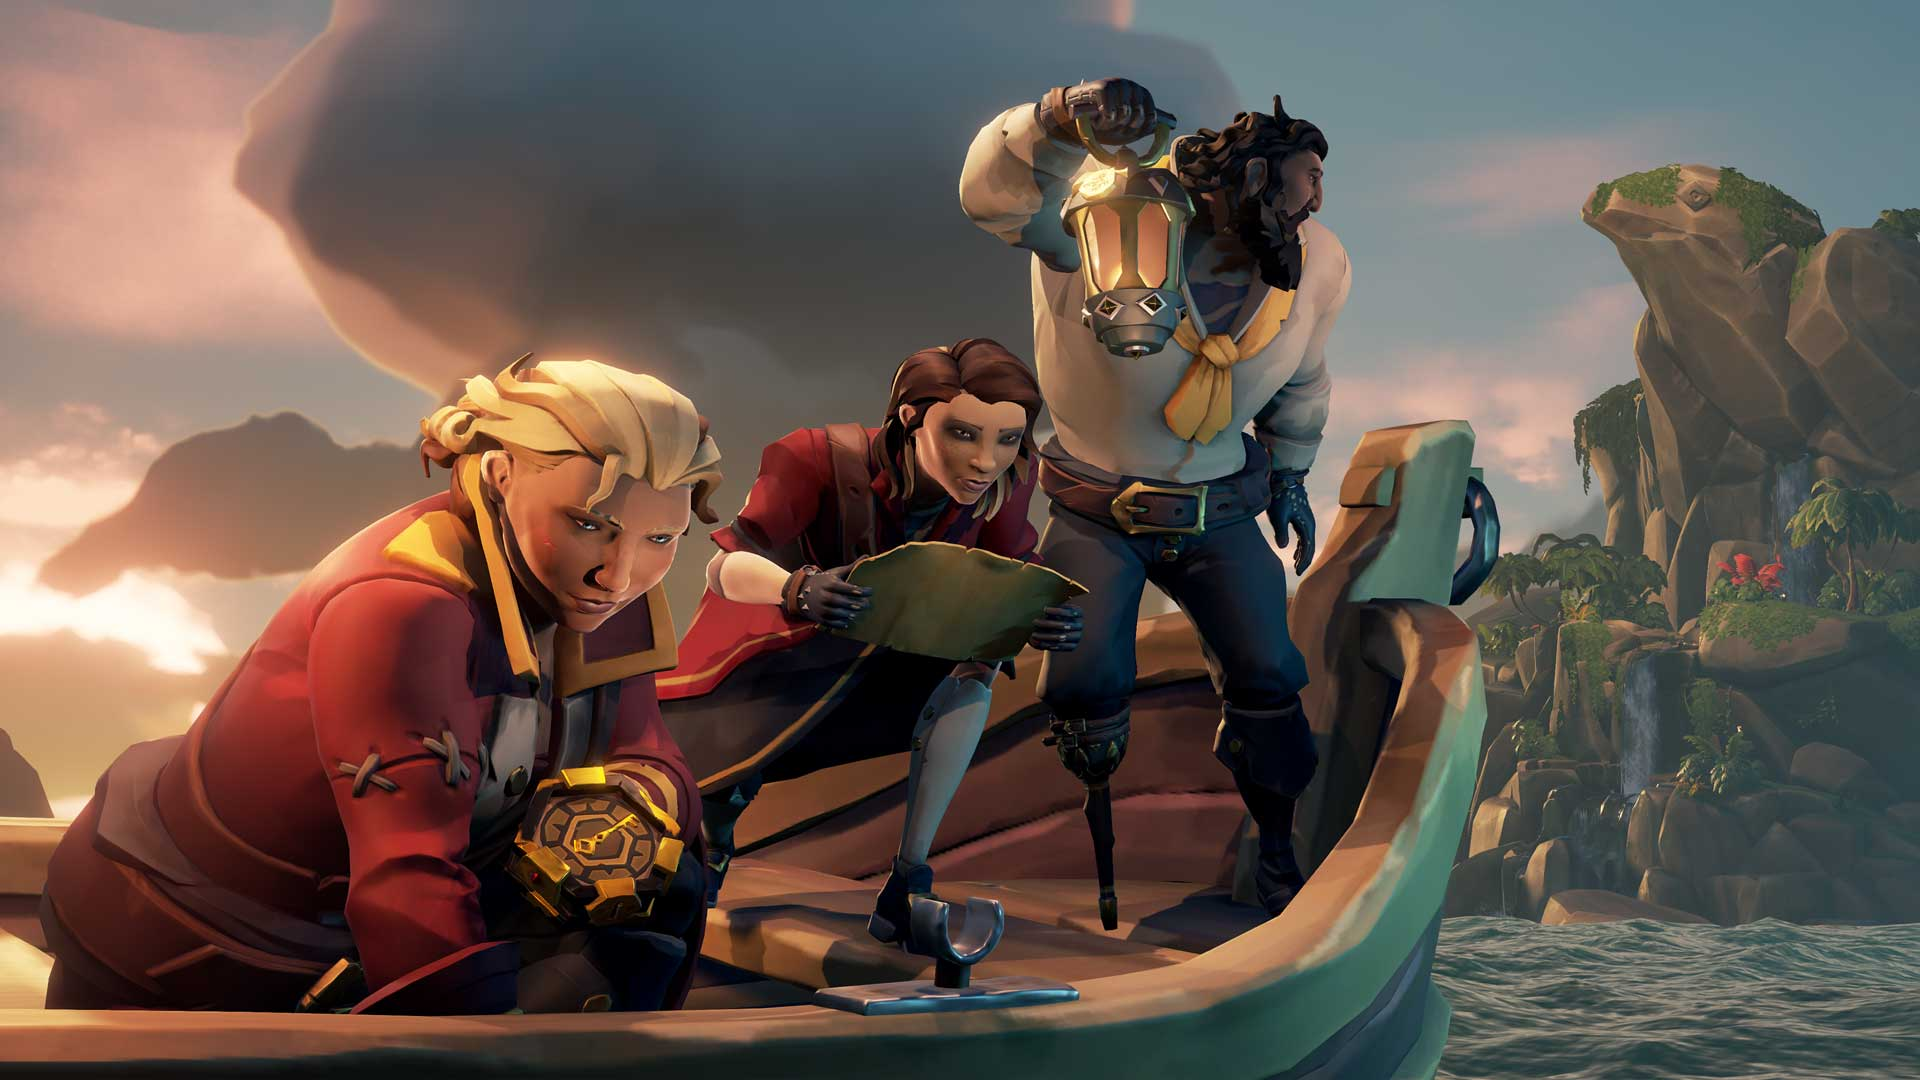 Piraten stechen in See in Sea of Thieves